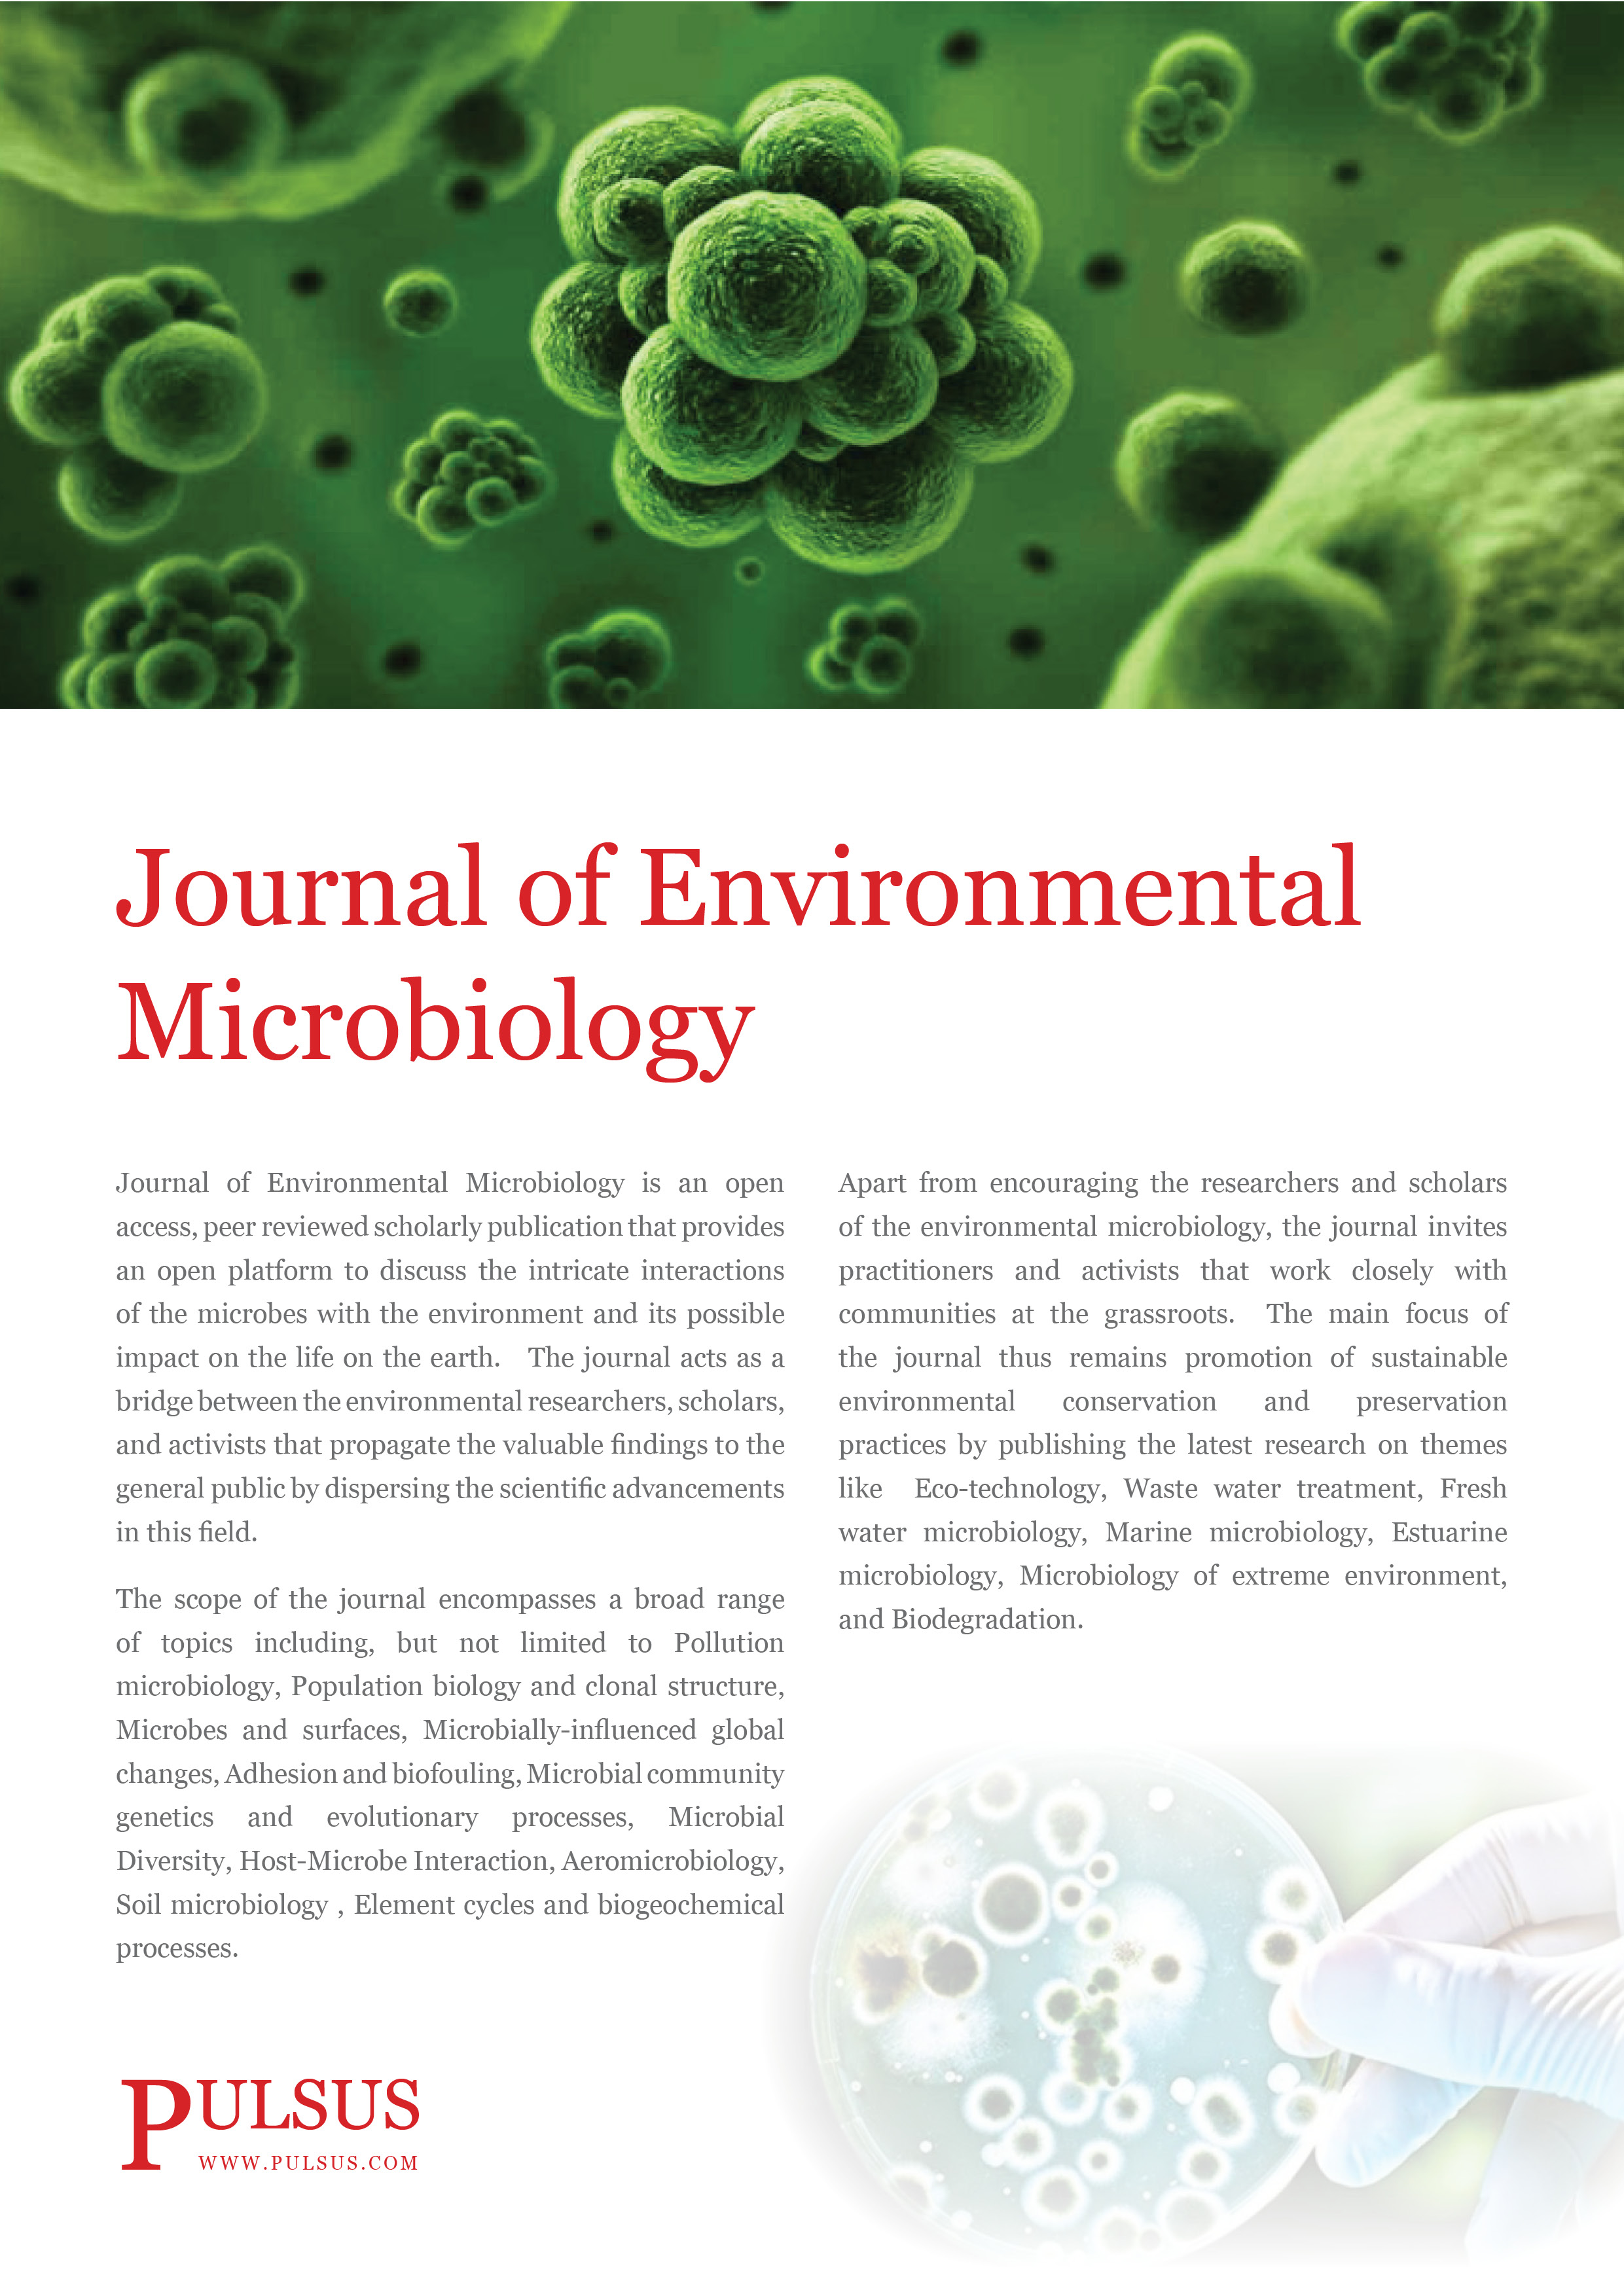 Journal of Environmental Microbiology